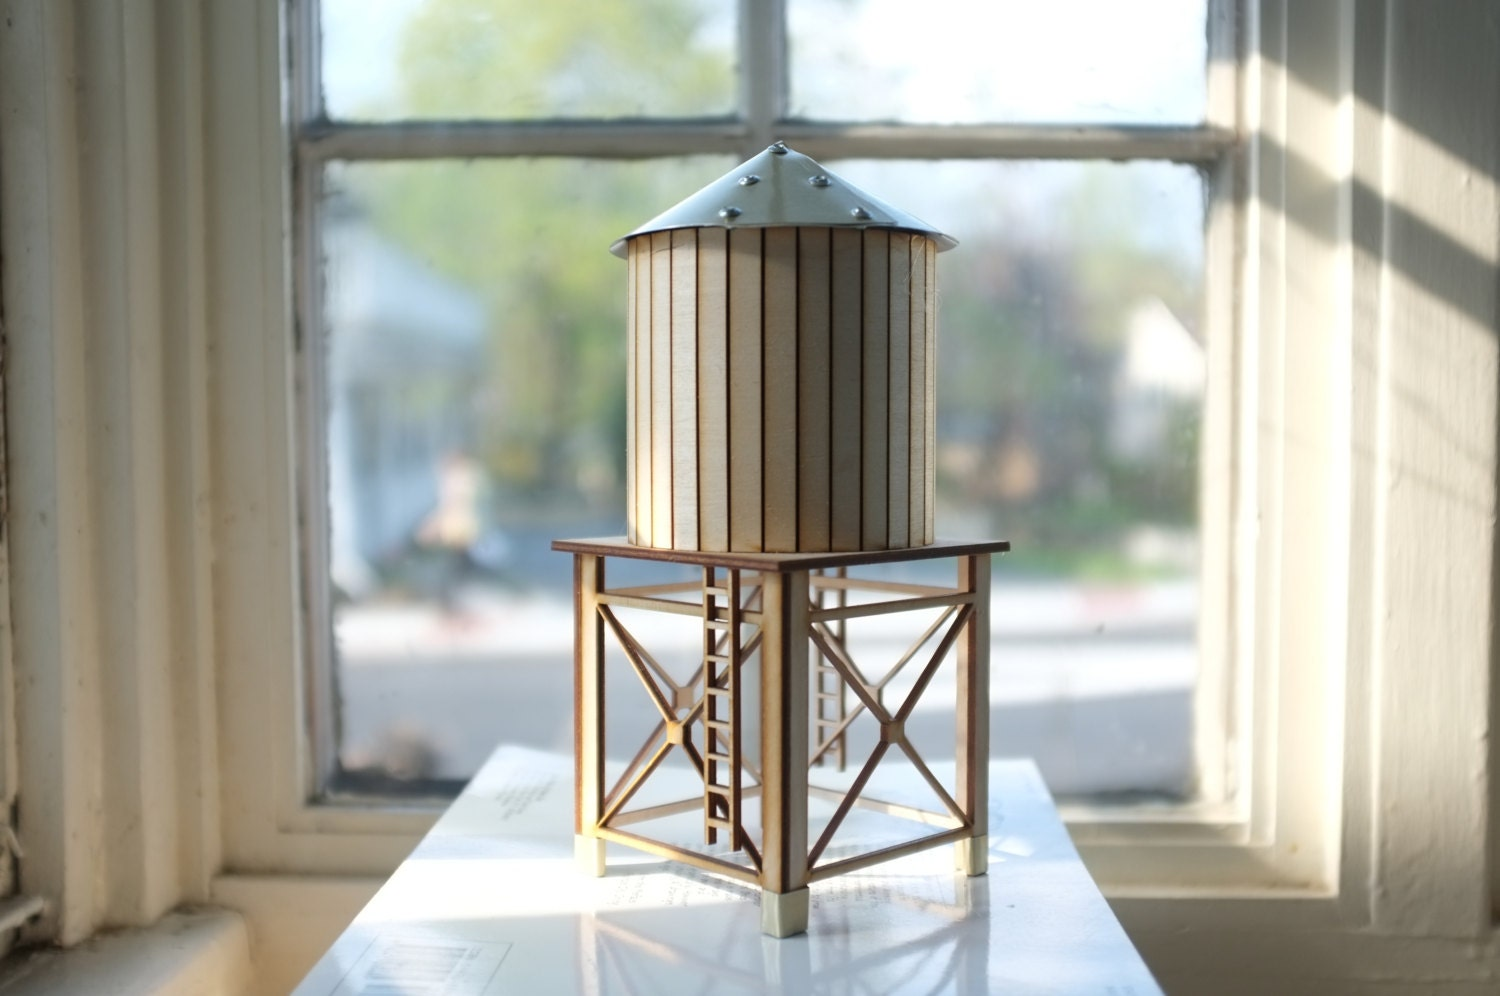 Roof Accents Of New Nyc Water Tower 2 Tabletop Wooden Water Tower Gold